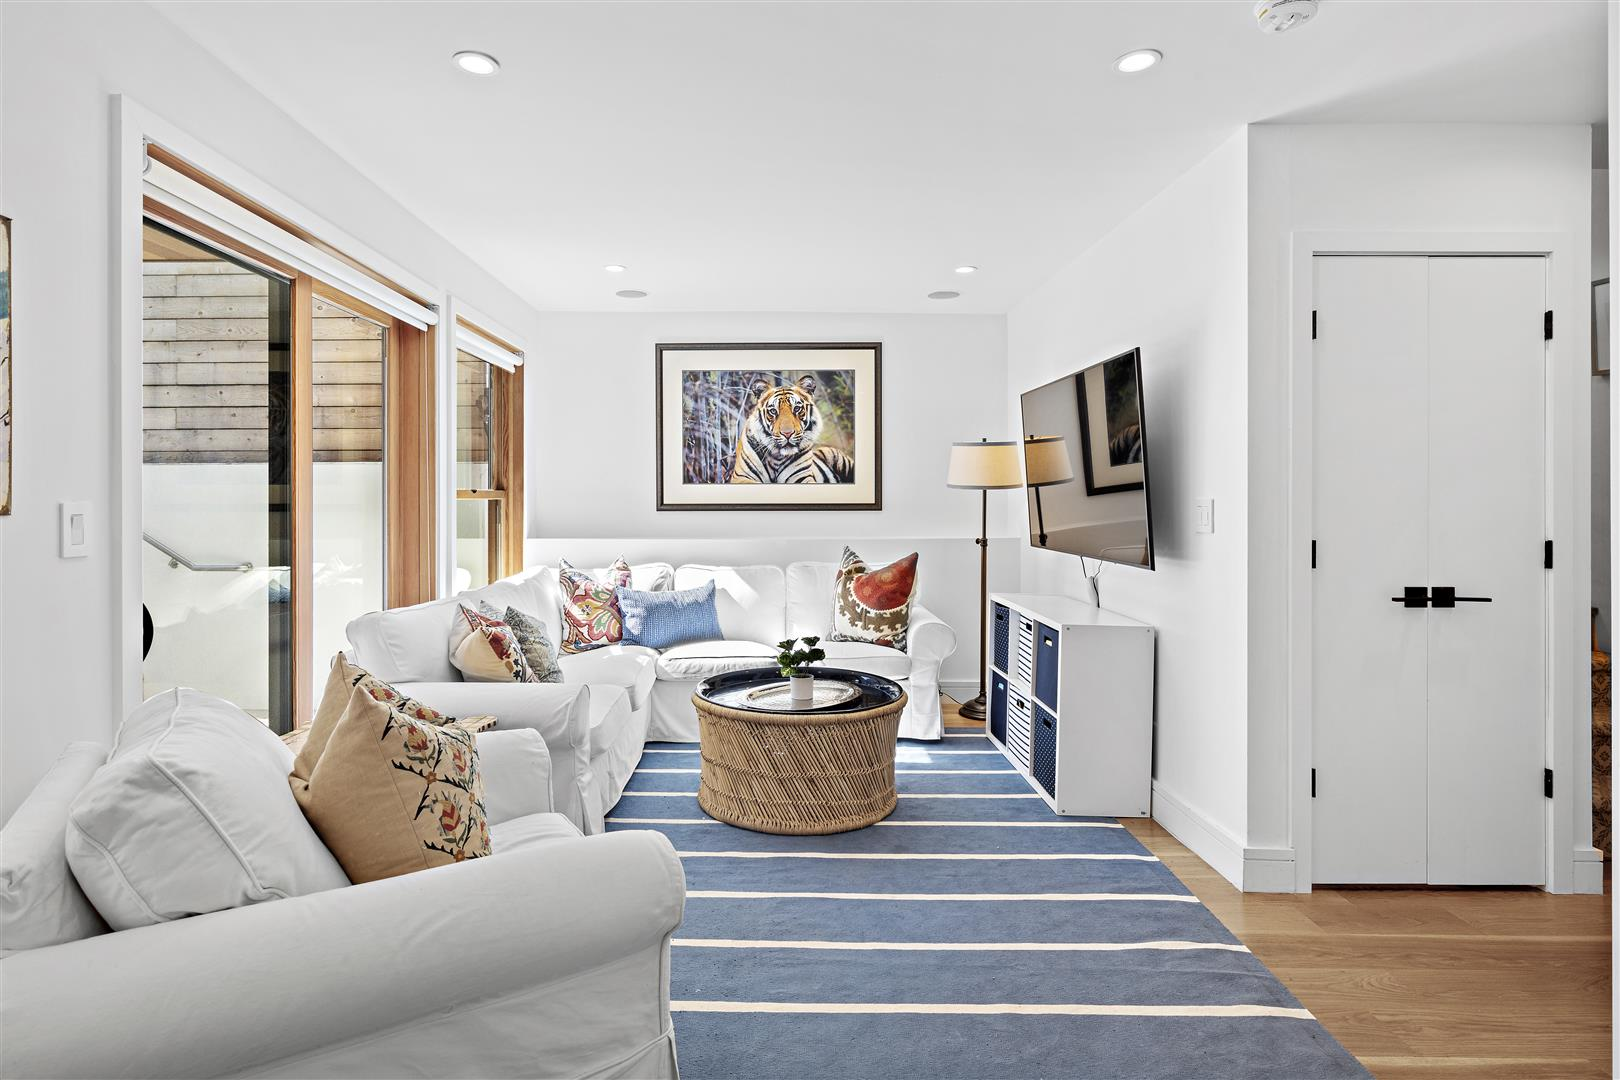 13-MLS-375-30th-Ave-San-Francisco60.jpg #15